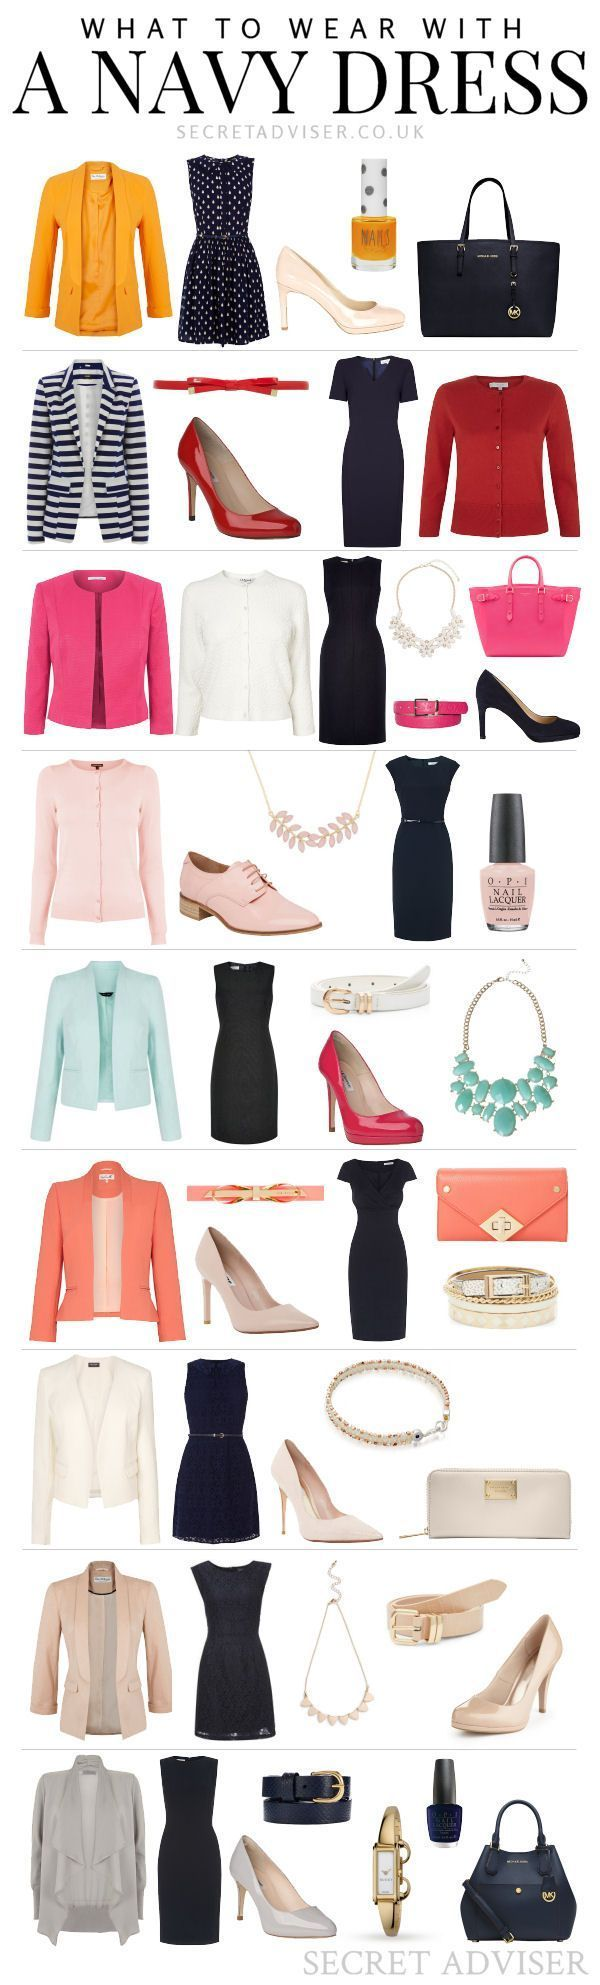 What to Wear With a Navy Dress - Lots of ideas and colour combinations to help you figure out how to wear one, will be useful later!